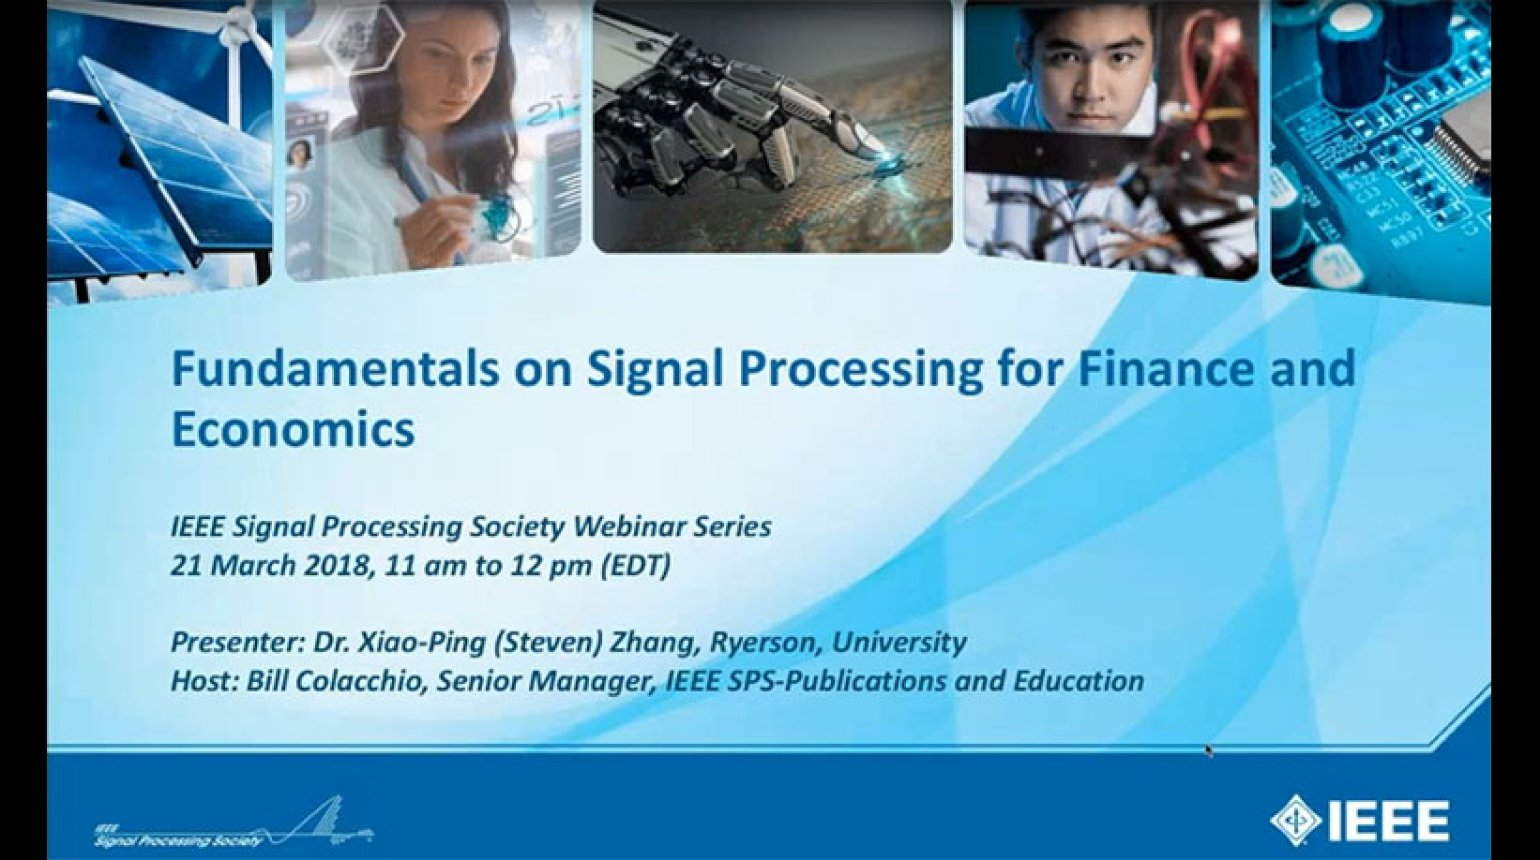 SPS Webinar-Fundamentals on Signal Processing for Finance and Economics. Xiao-Ping Zhang